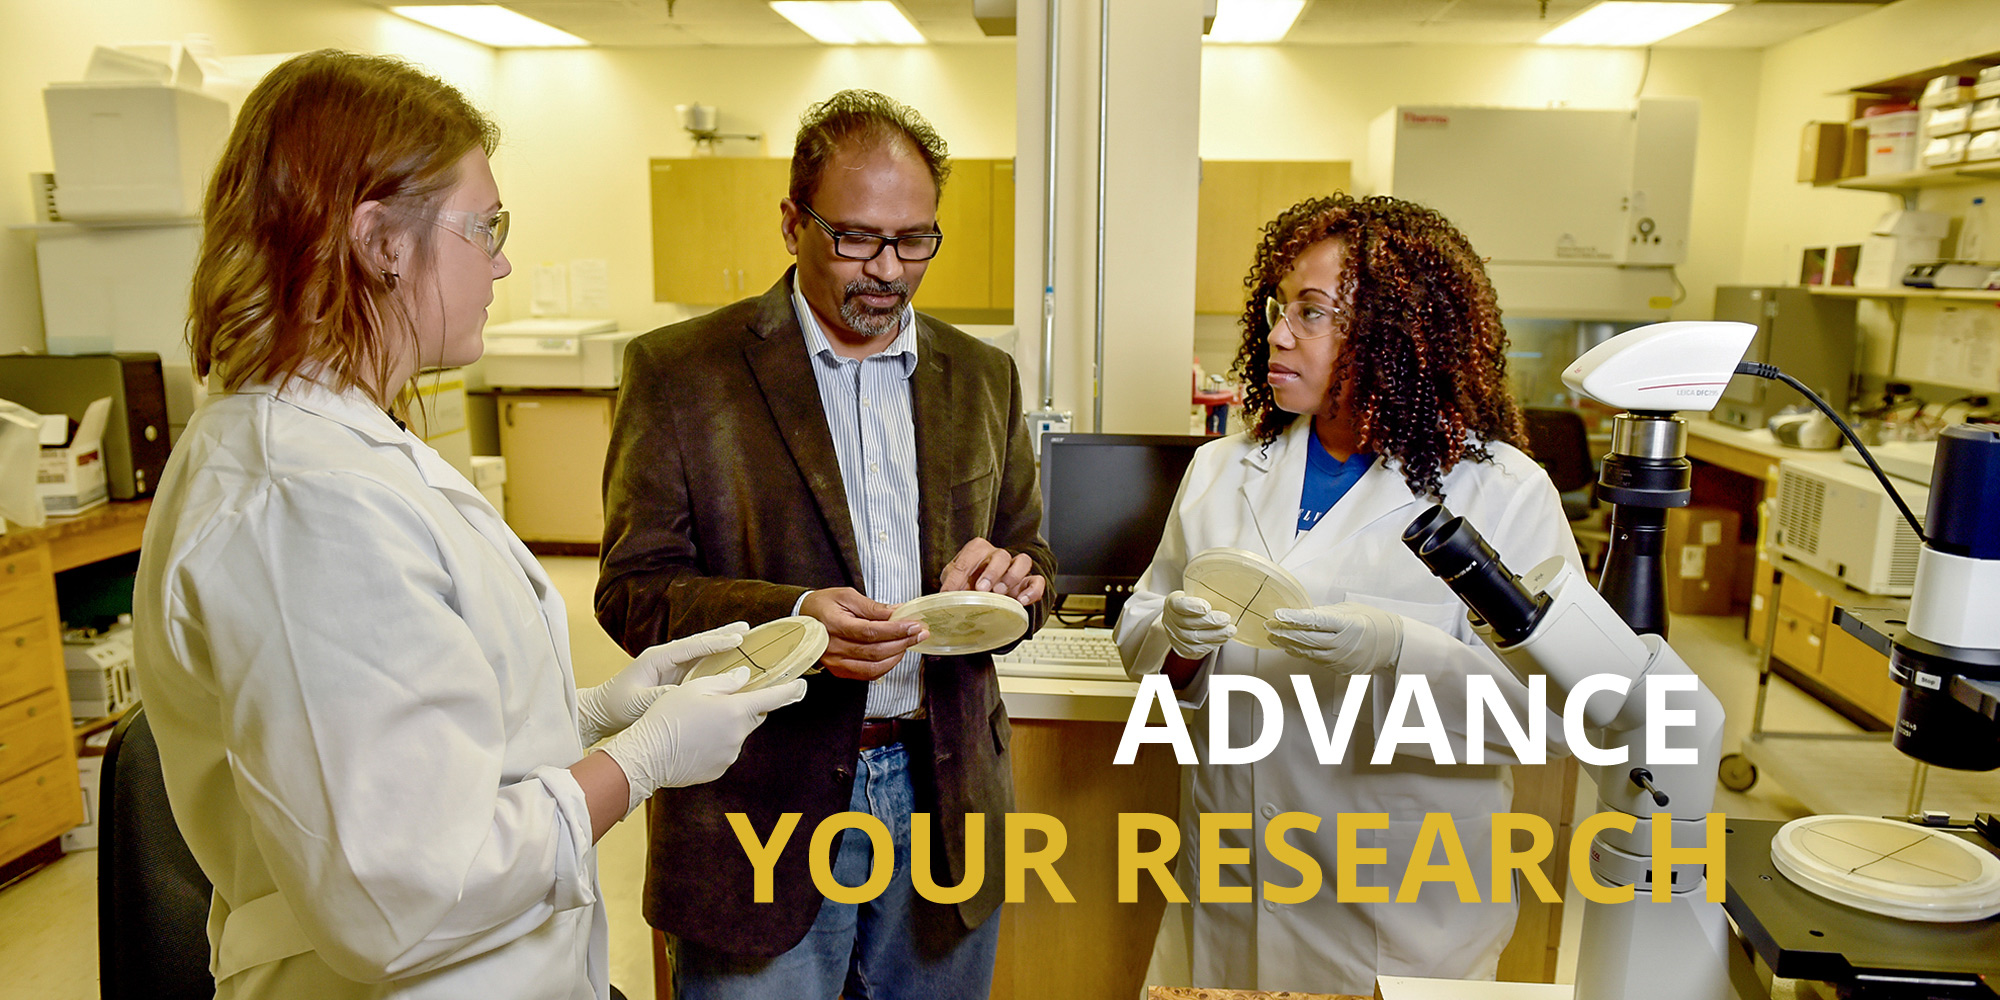 Faculty - Advance Your Research